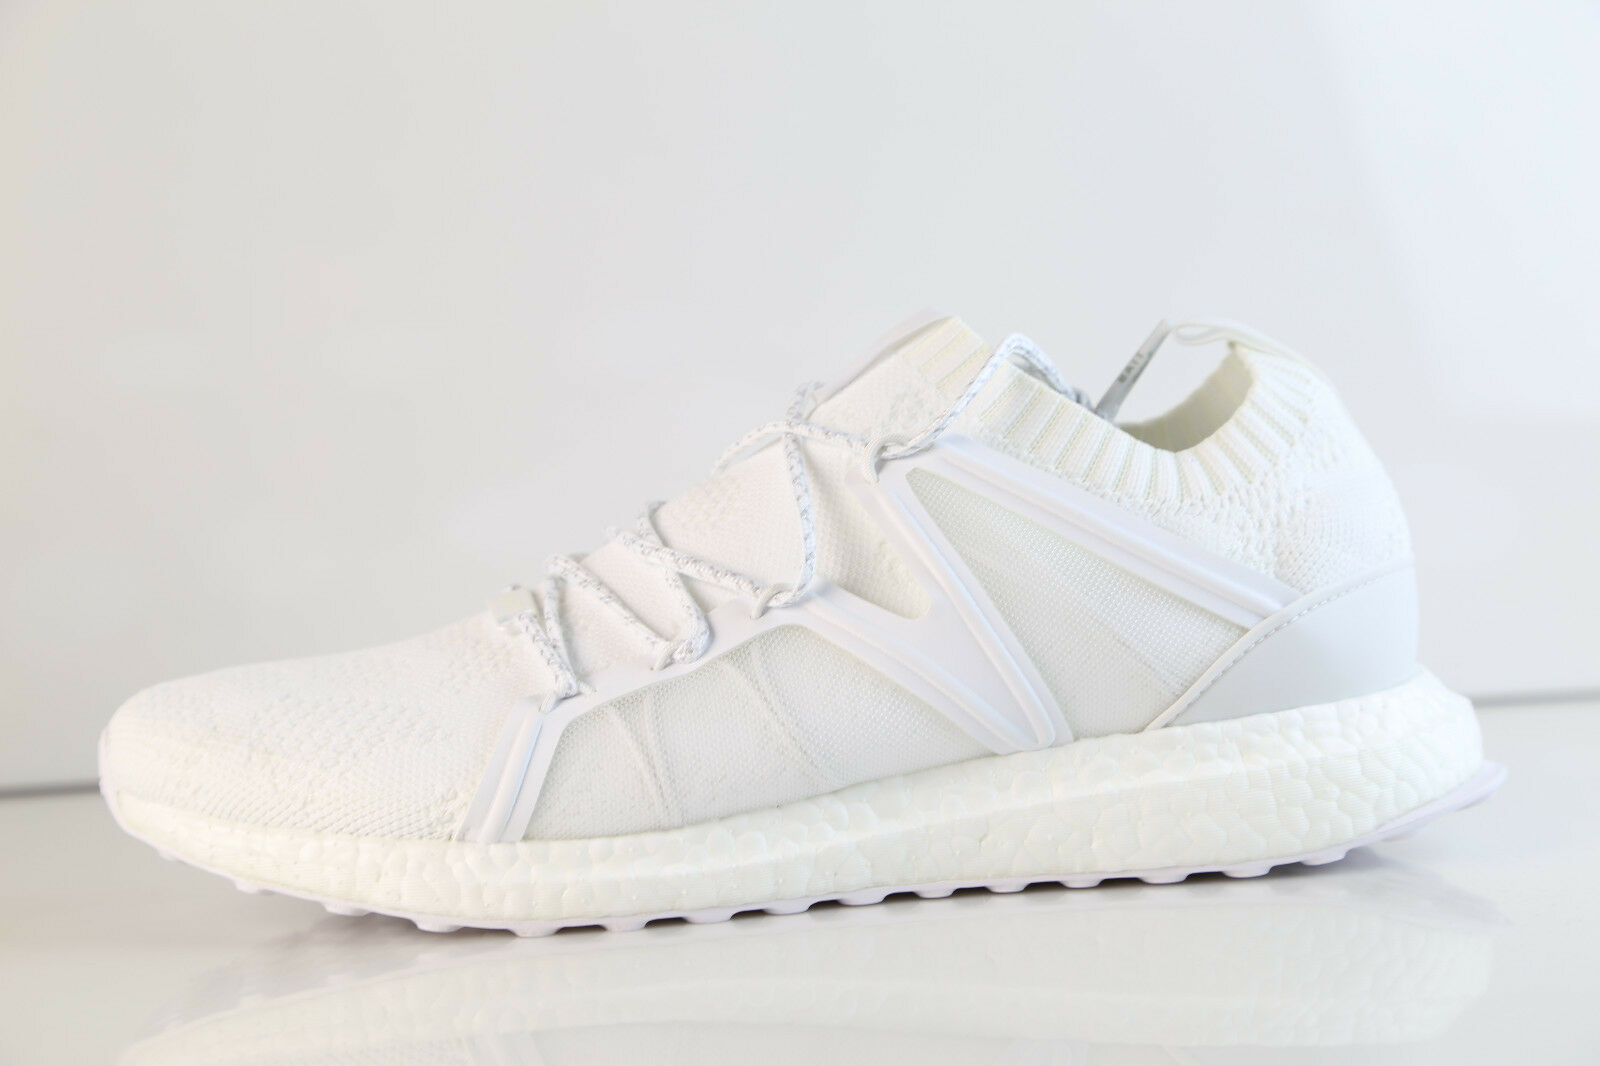 Adidas Bait Equipment Support 93 16 Research White Glow CM7874 7-12.5  boost